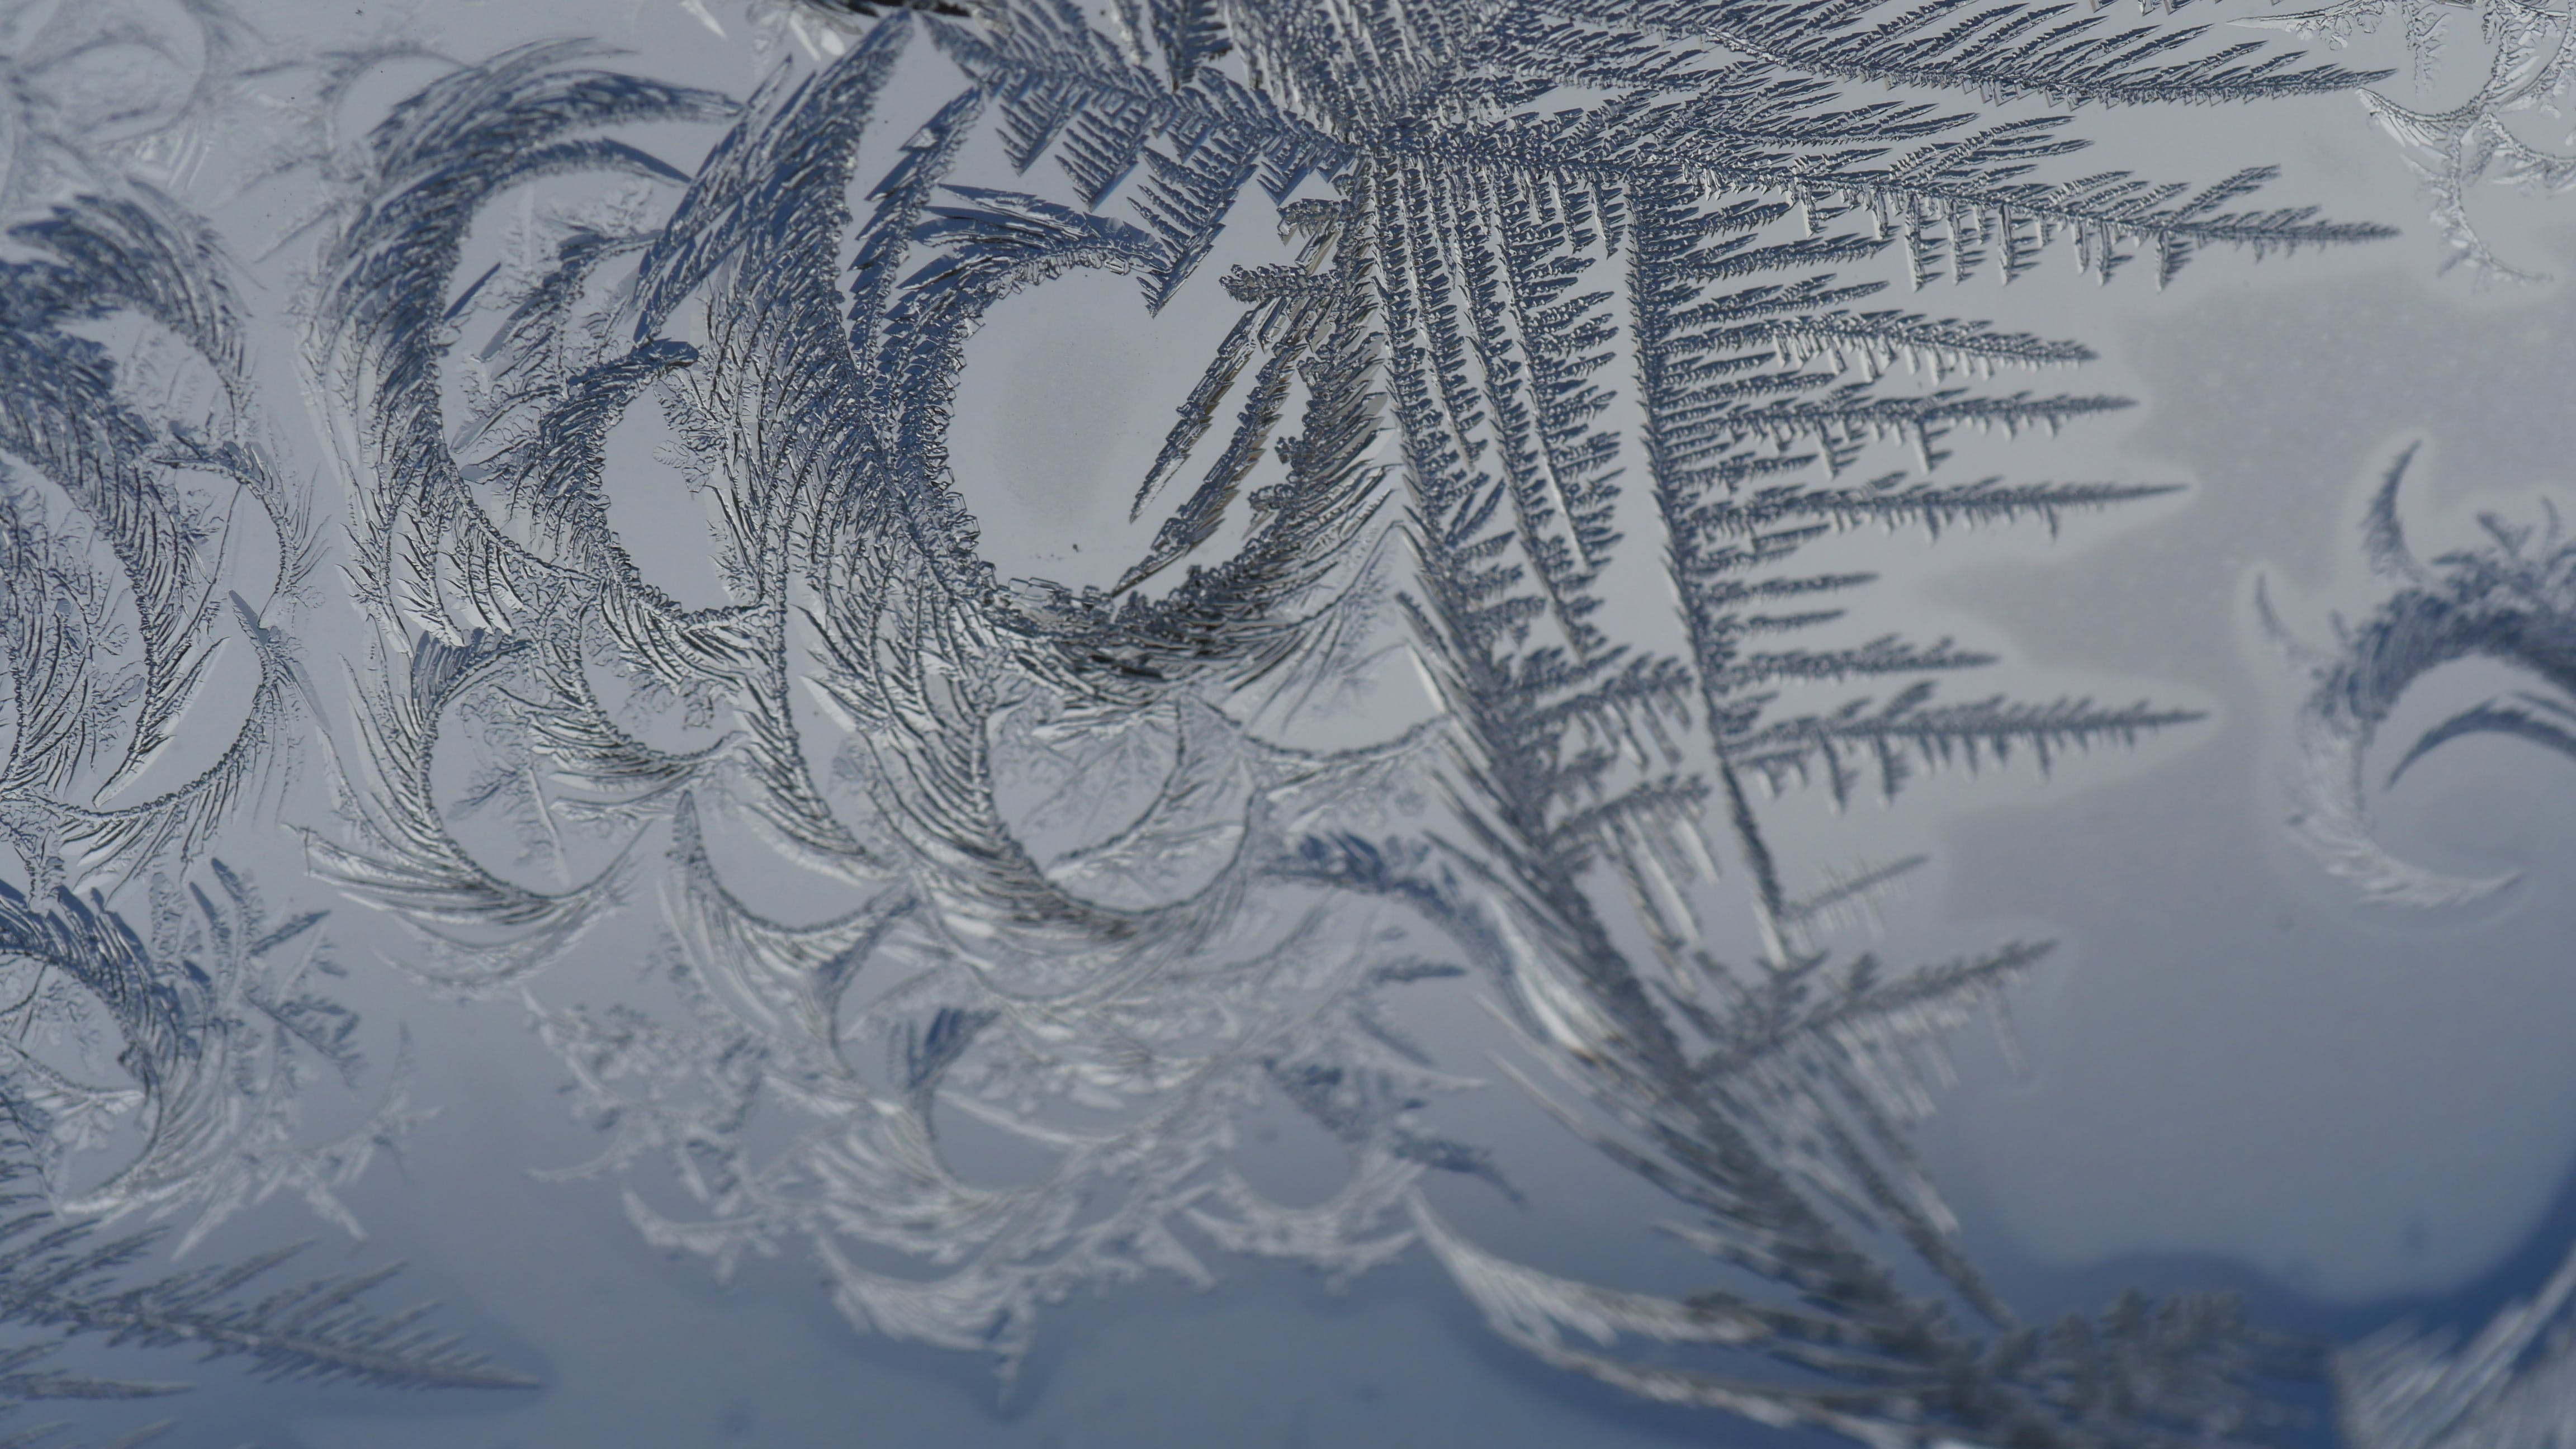 Free stock photo of frost, frosted glass, macro photography, winter